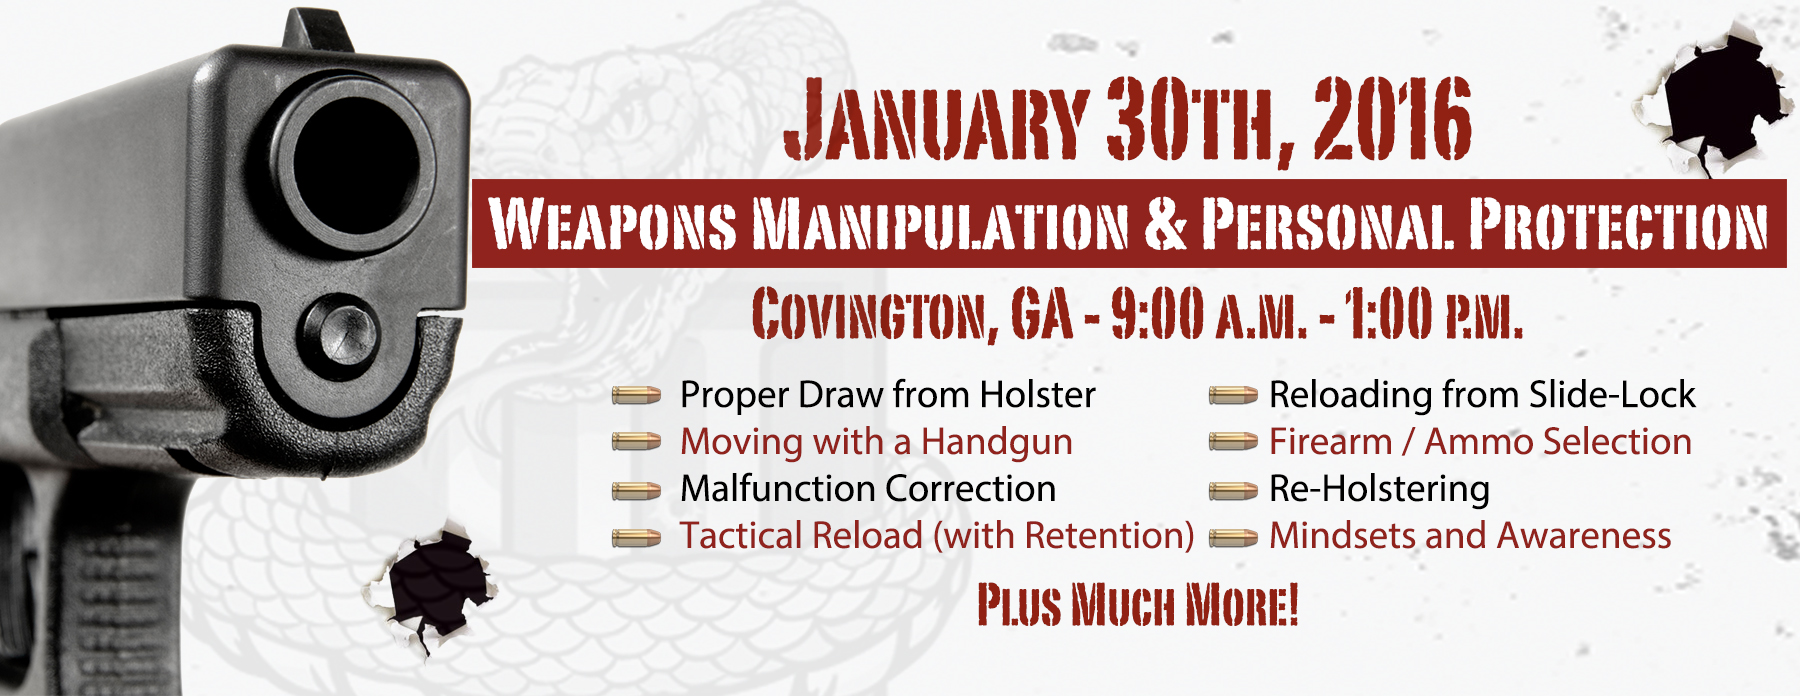 Weapons Manipulation Handgun Training - Atlanta Georgia